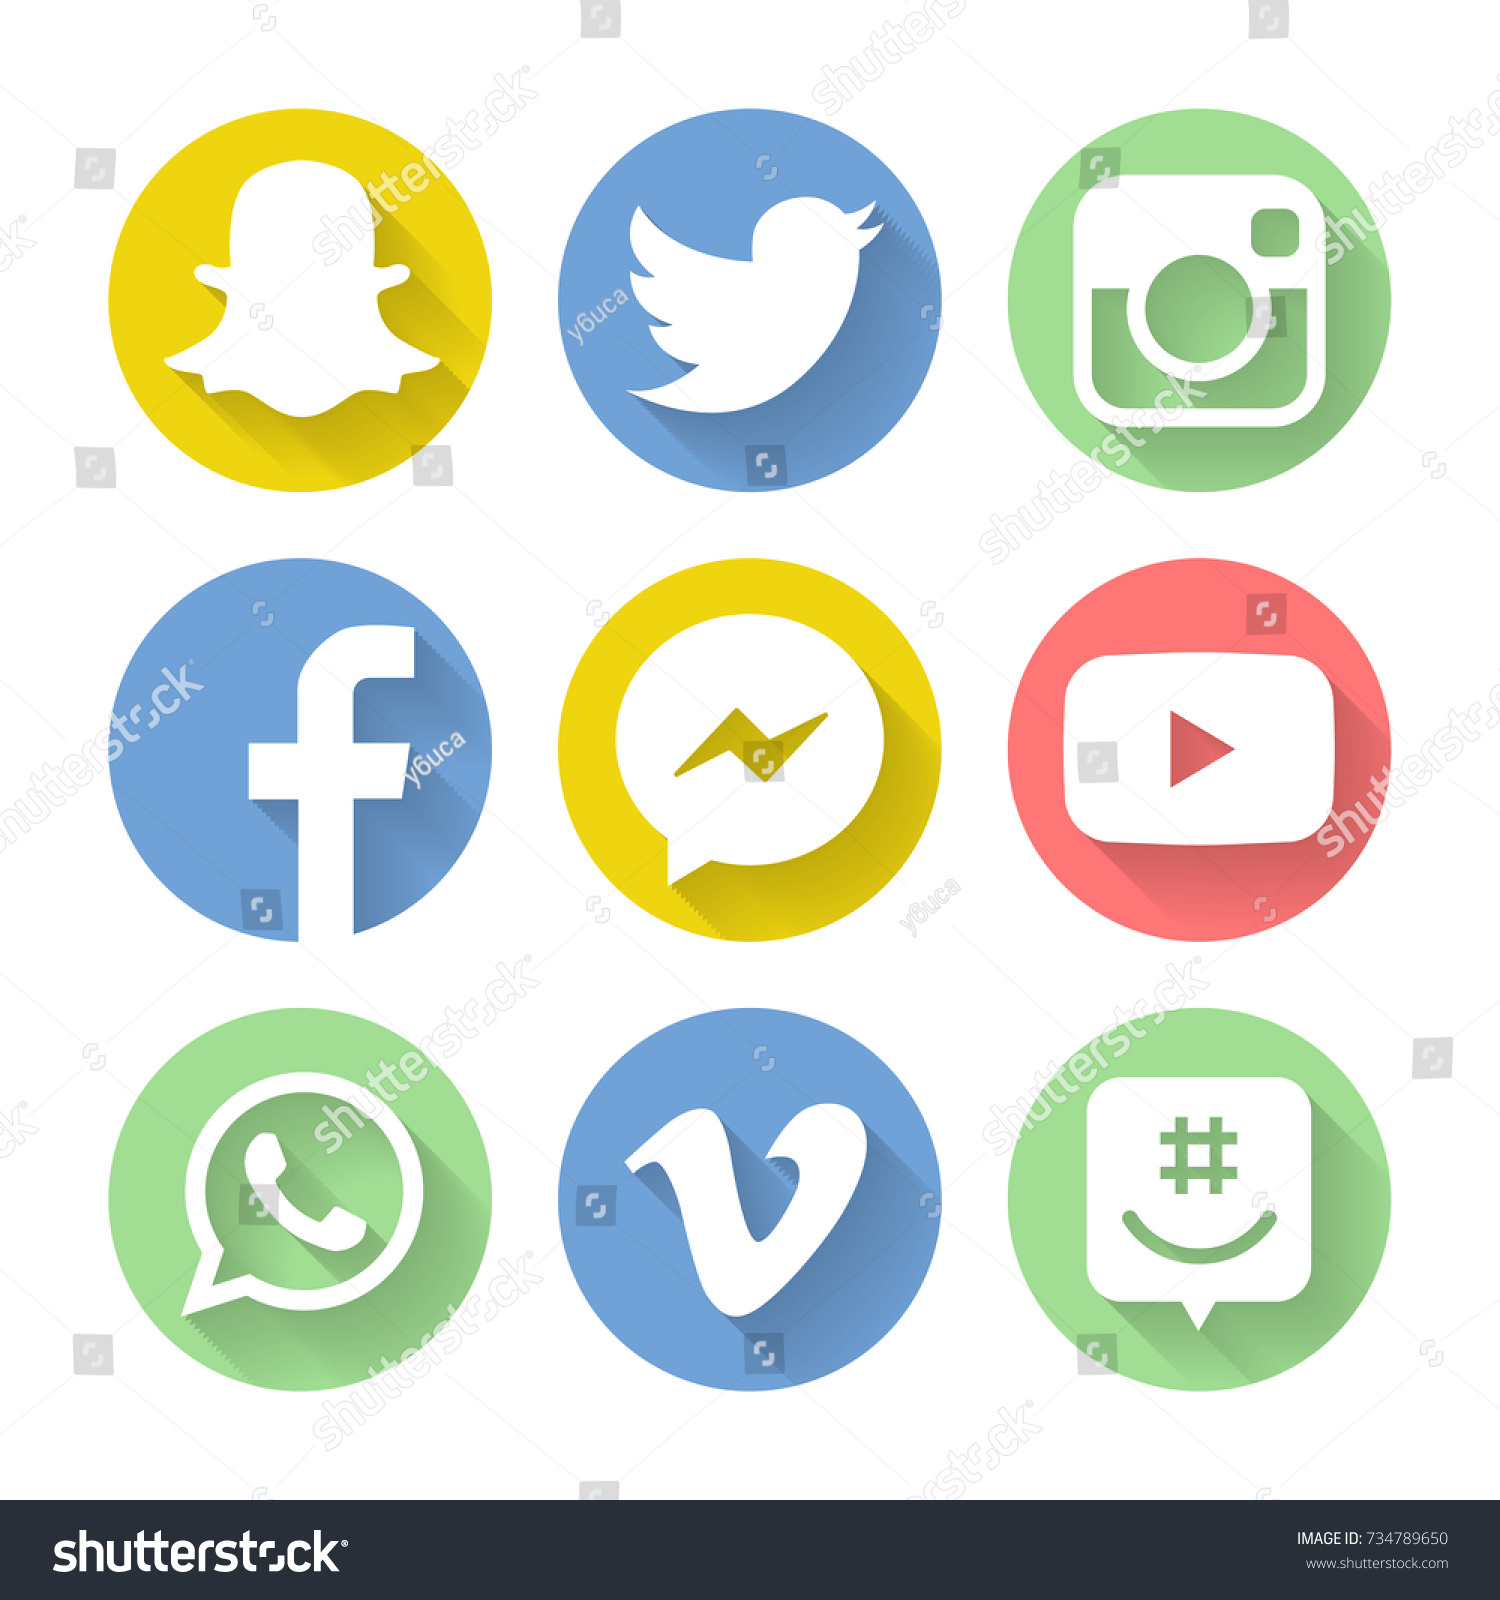 Collection popular social media icons facebook stock photo collection of popular social media icons facebook twitter instagram youtube vine buycottarizona